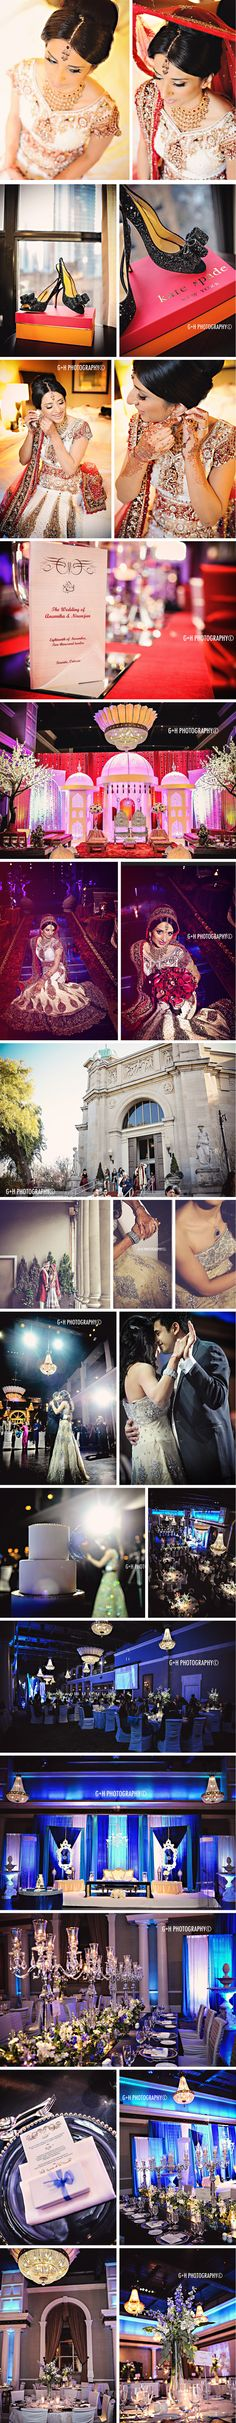 this would my ultimate fantasy wedding. a girl can dream.